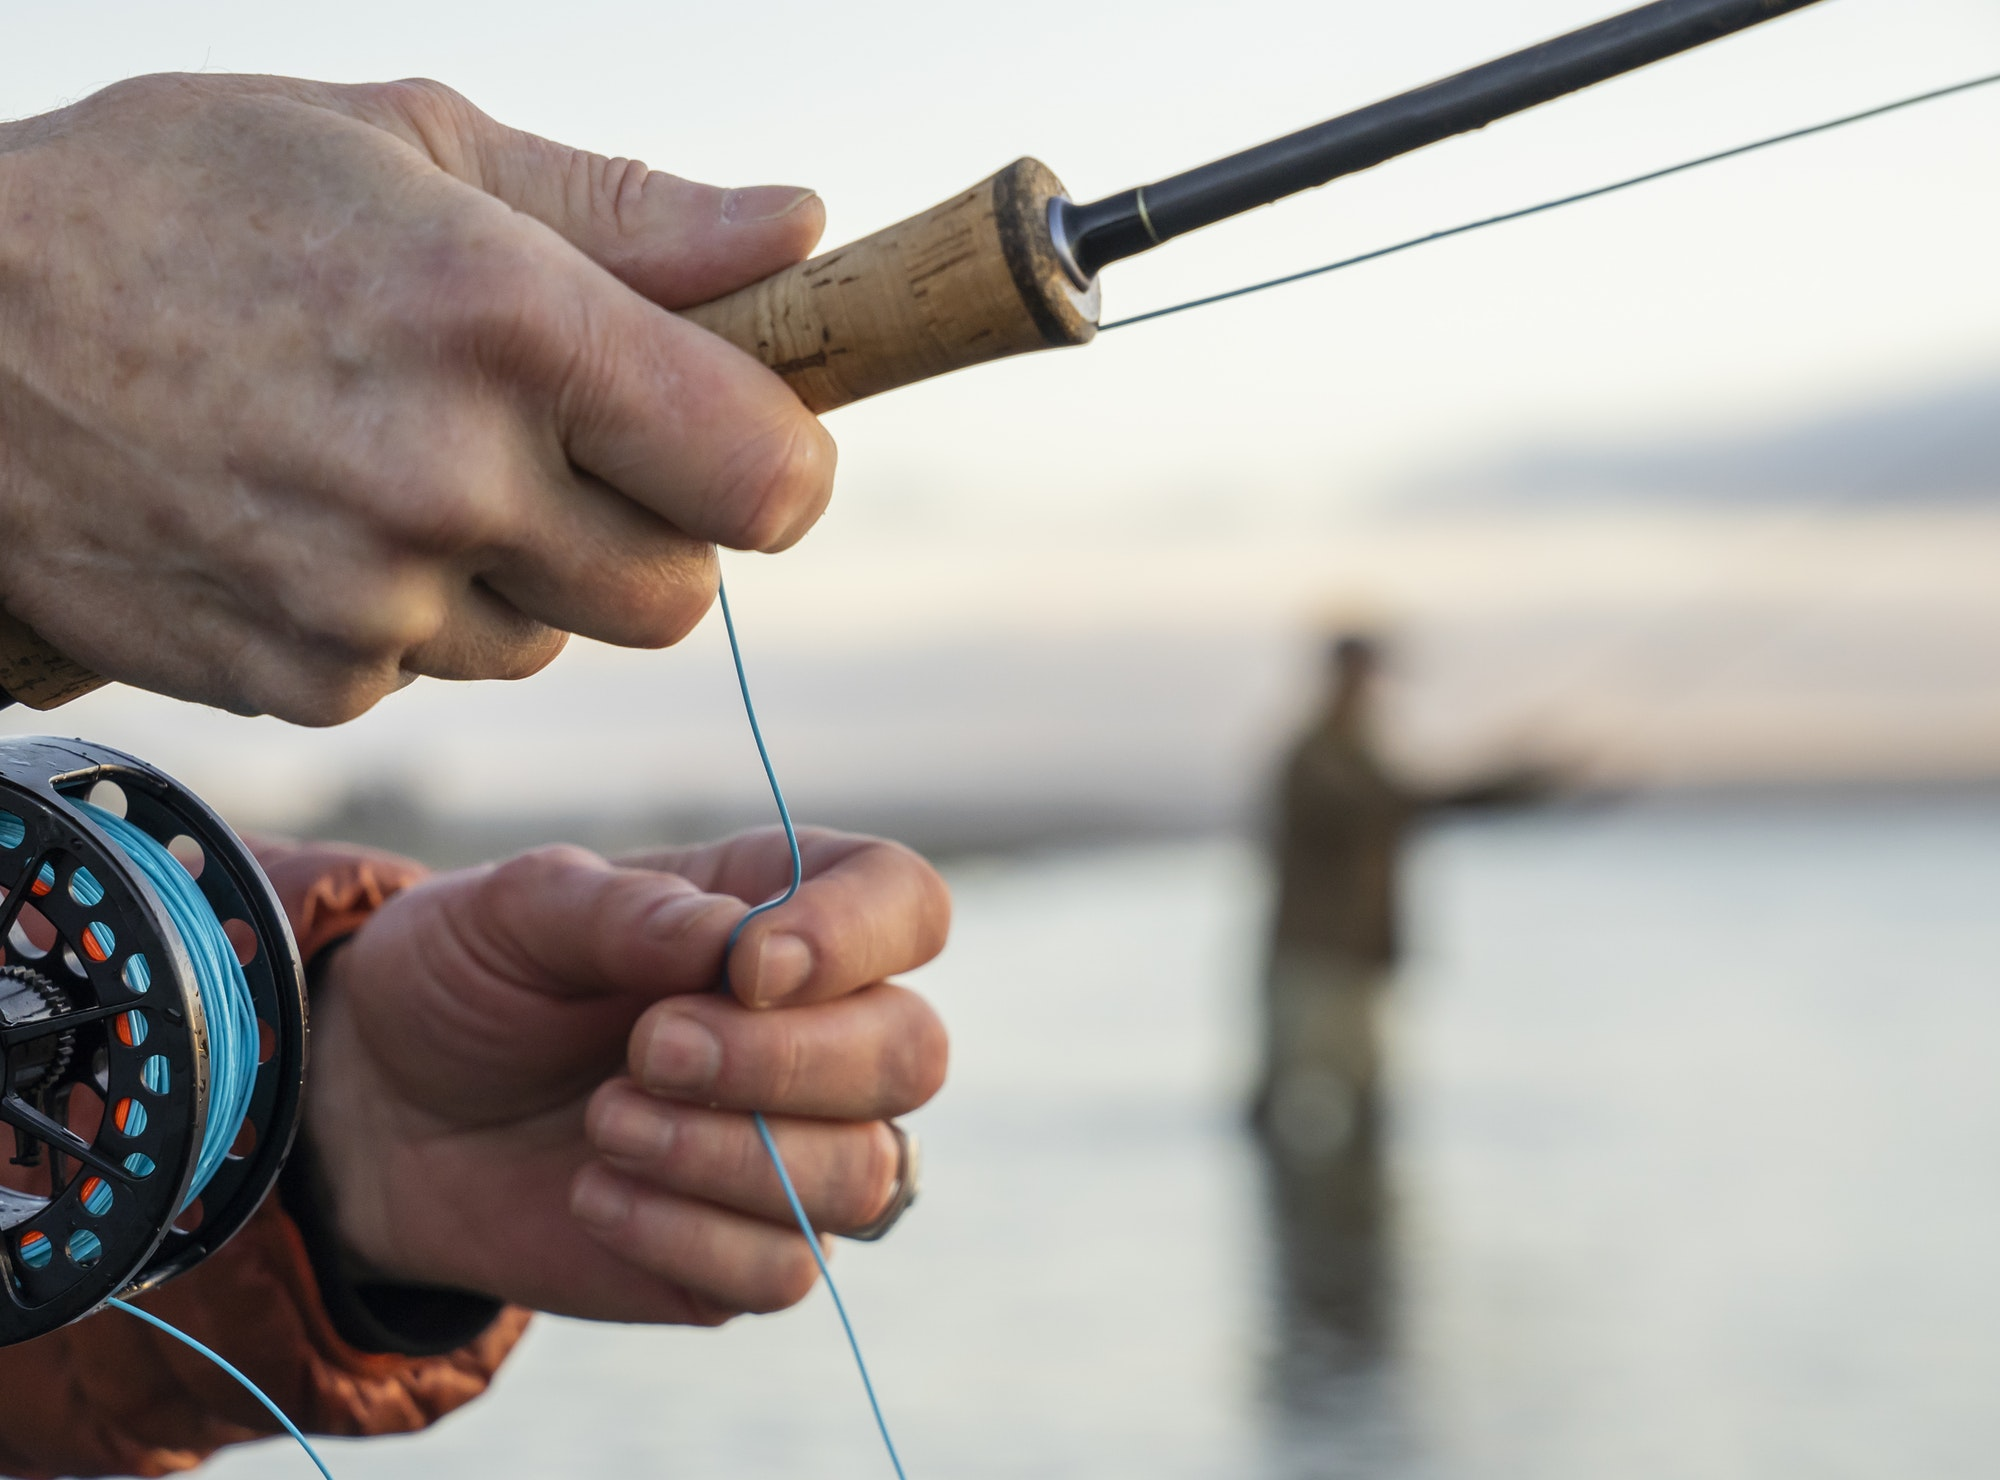 A closeup of a fly fisherman's hands holding his fly rod and line while fishing.